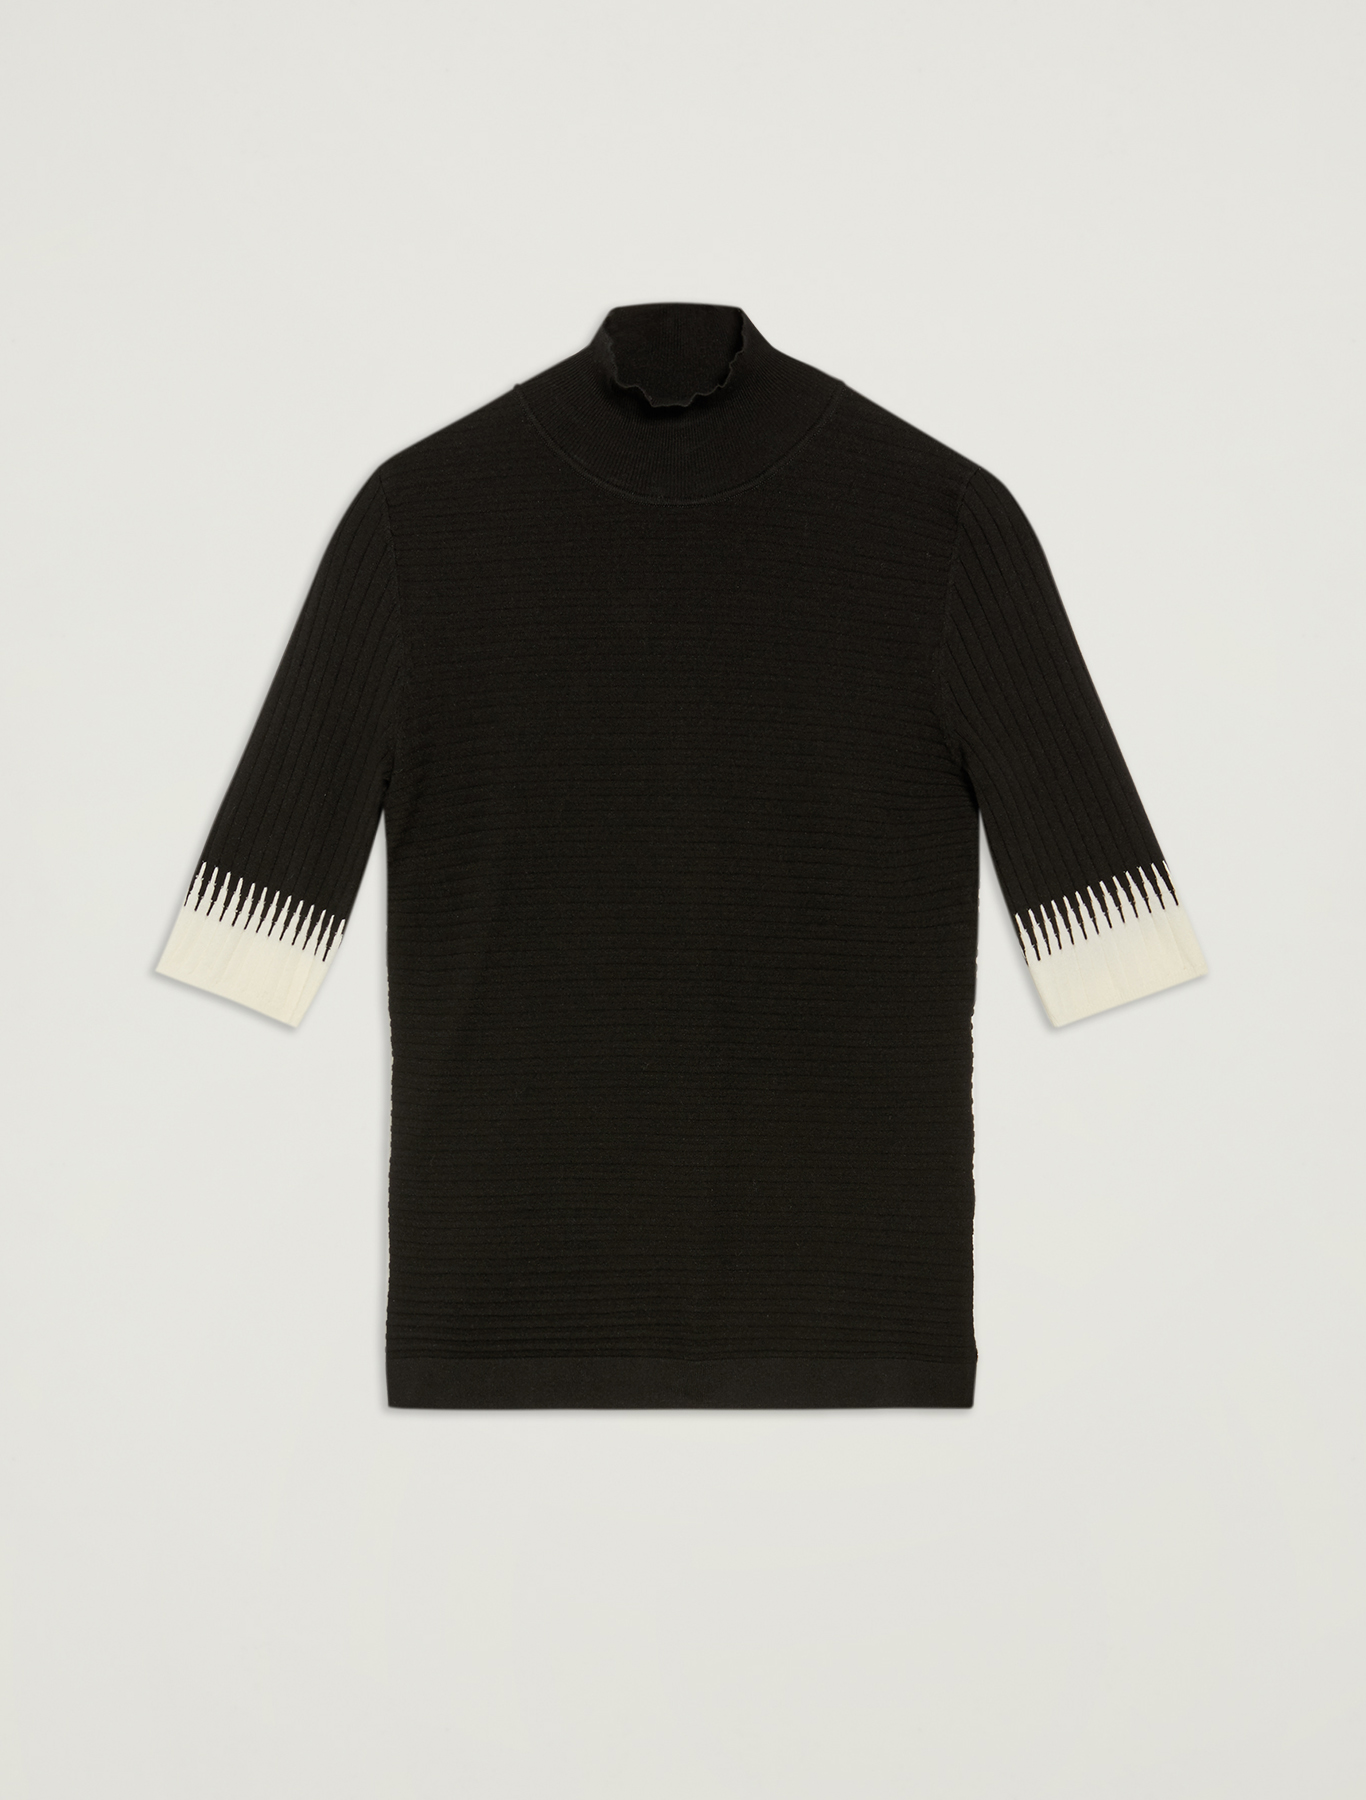 Turtleneck with contrasting details - black pattern - pennyblack